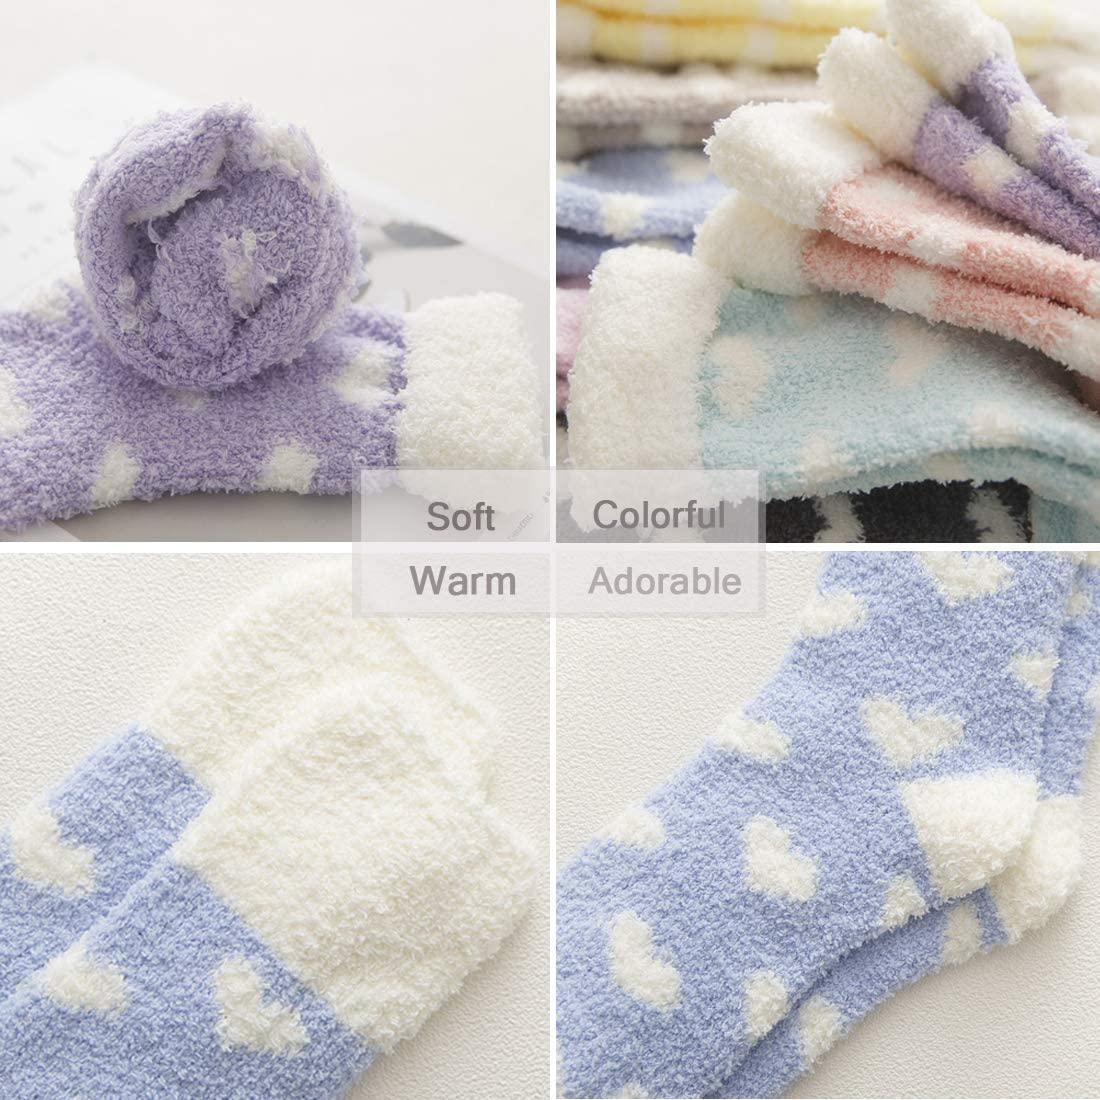 6 Pairs Ladies Women Soft Cozy Fulffy Bed Socks Sleeping Warm Girls Size 4-8 UK